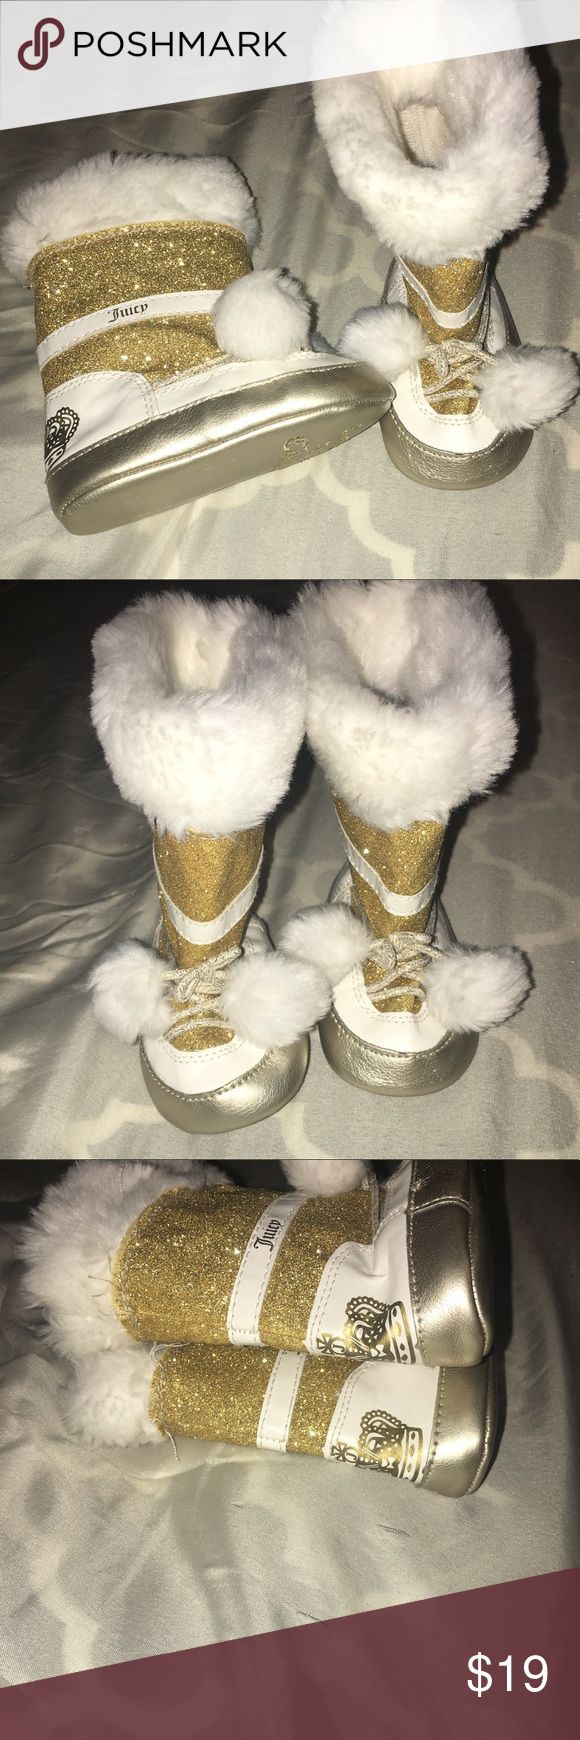 Juicy Couture Baby Girls Boots Size 3-6 months Excellent condition Juicy Couture Shoes Baby & Walker